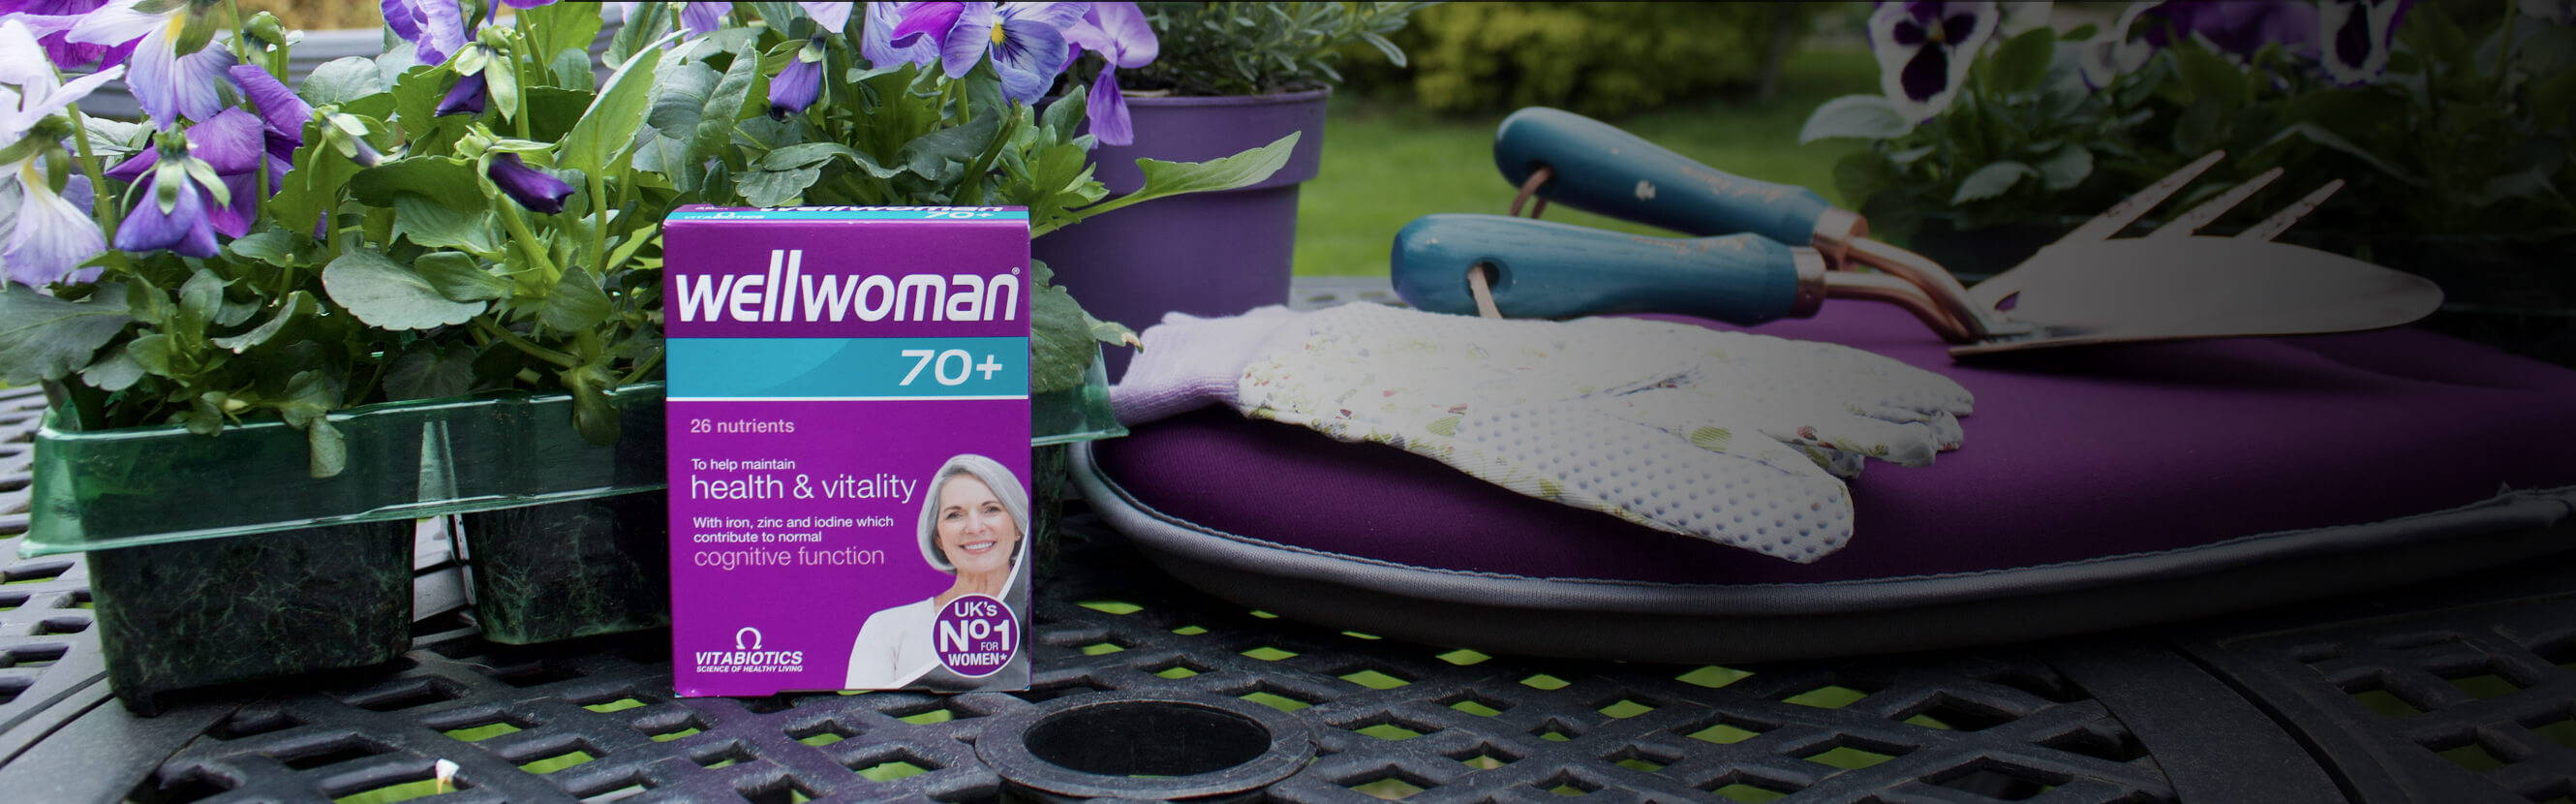 Wellwoman 70+ Pack In The Garden